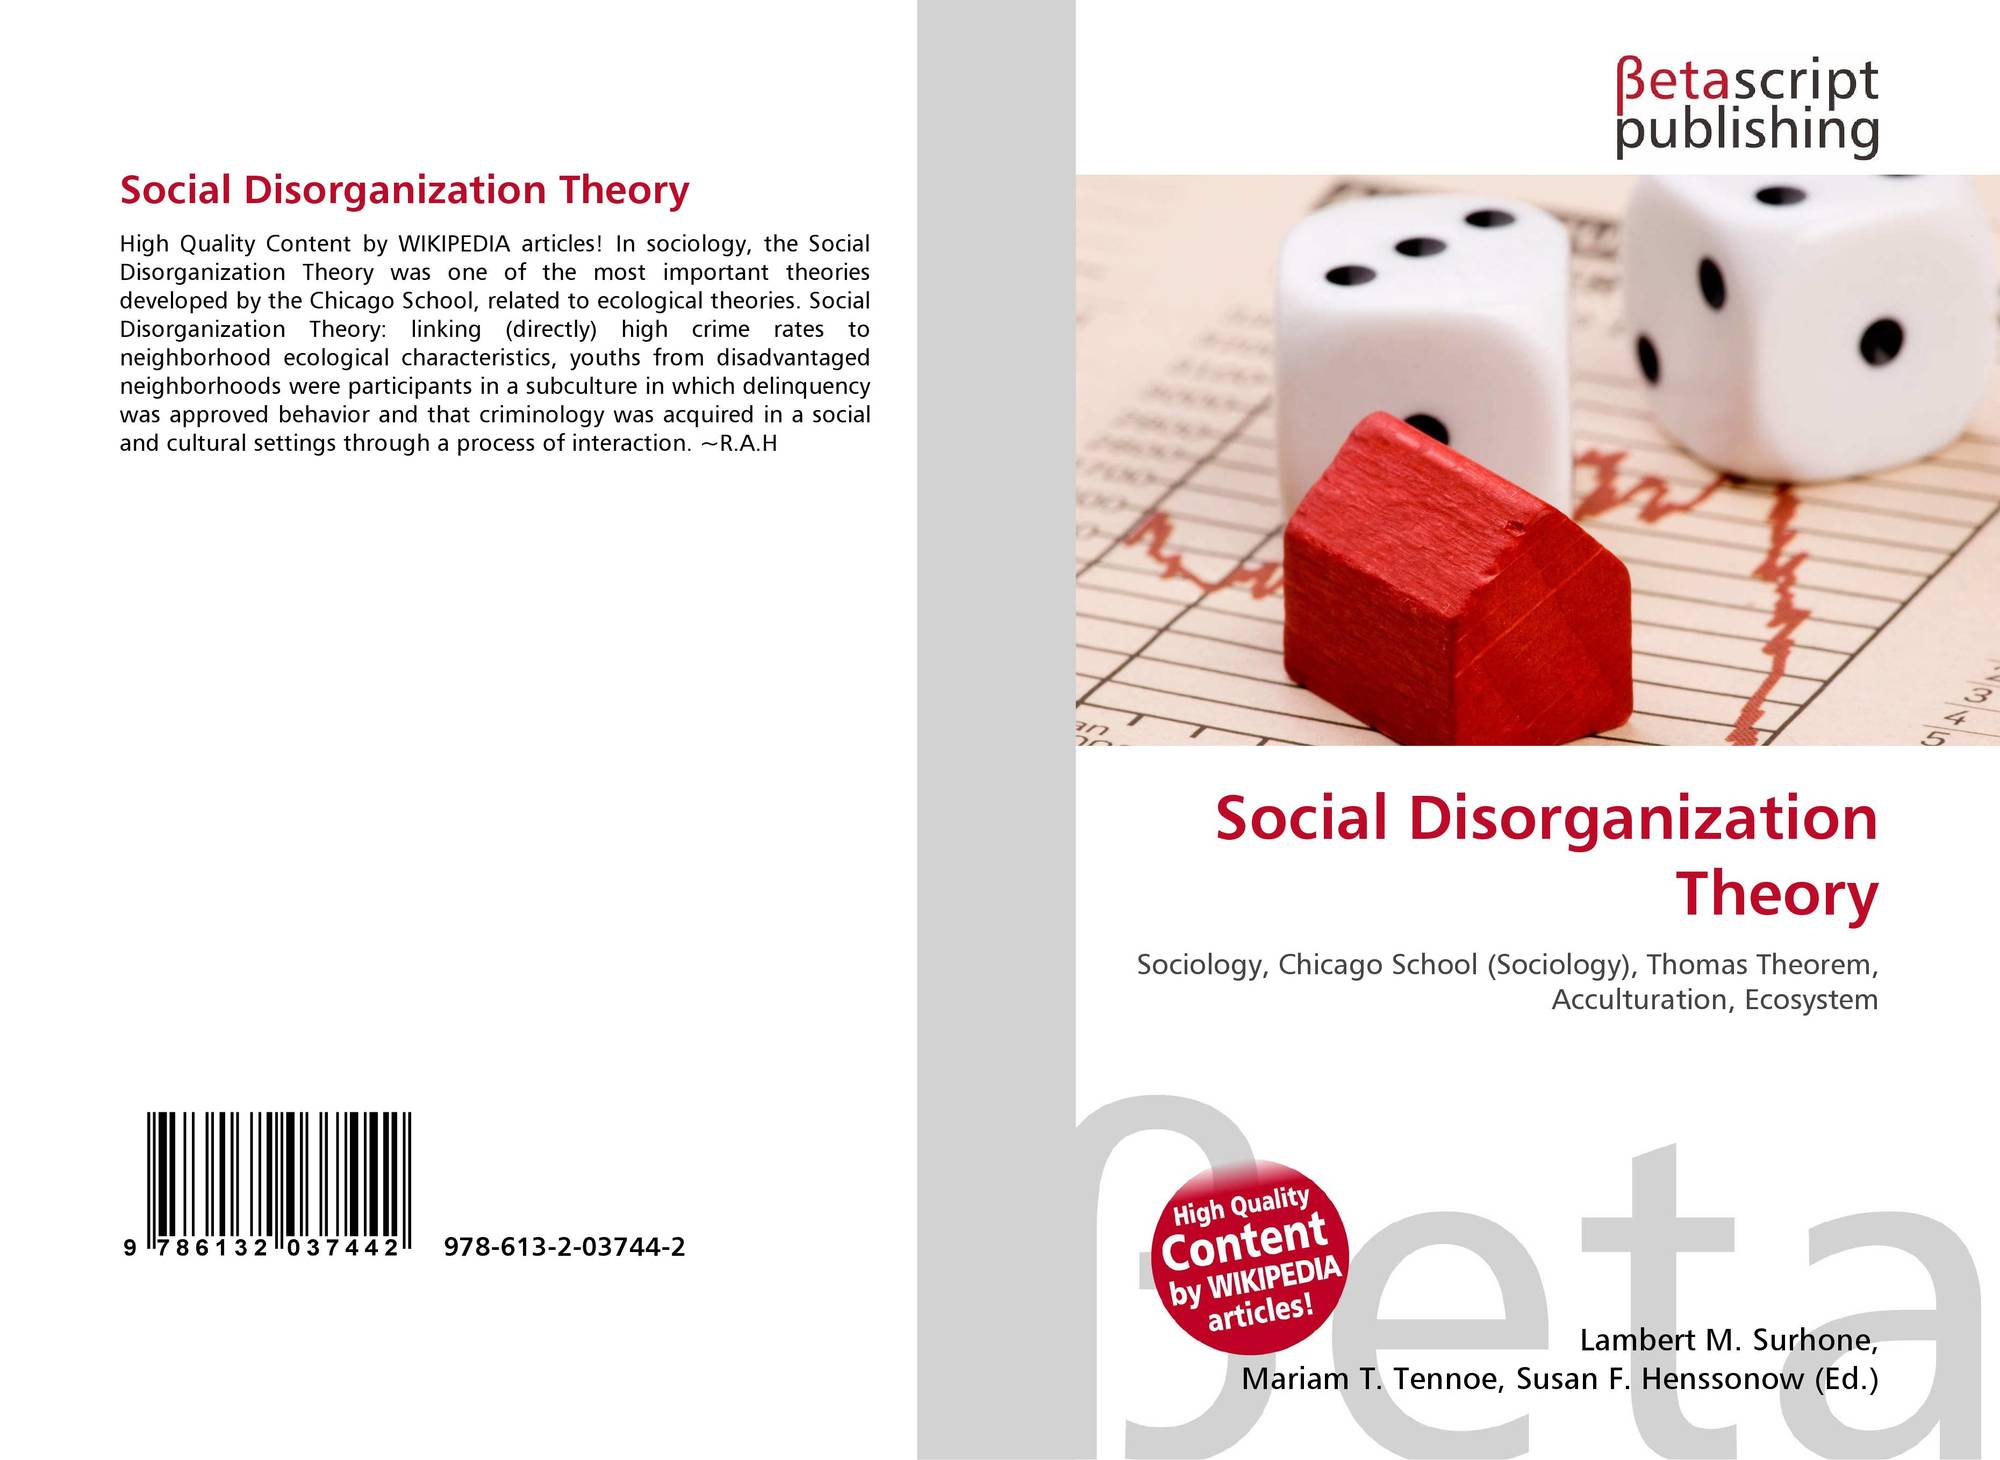 social disorganization theory and juveniles essays The chicago school presented the theory of social disorganization with relation to ecological theories according to this theory, the higher level of poverty is the higher crime rates are this theory refers to crime and juvenile delinquency at the neighborhood level.